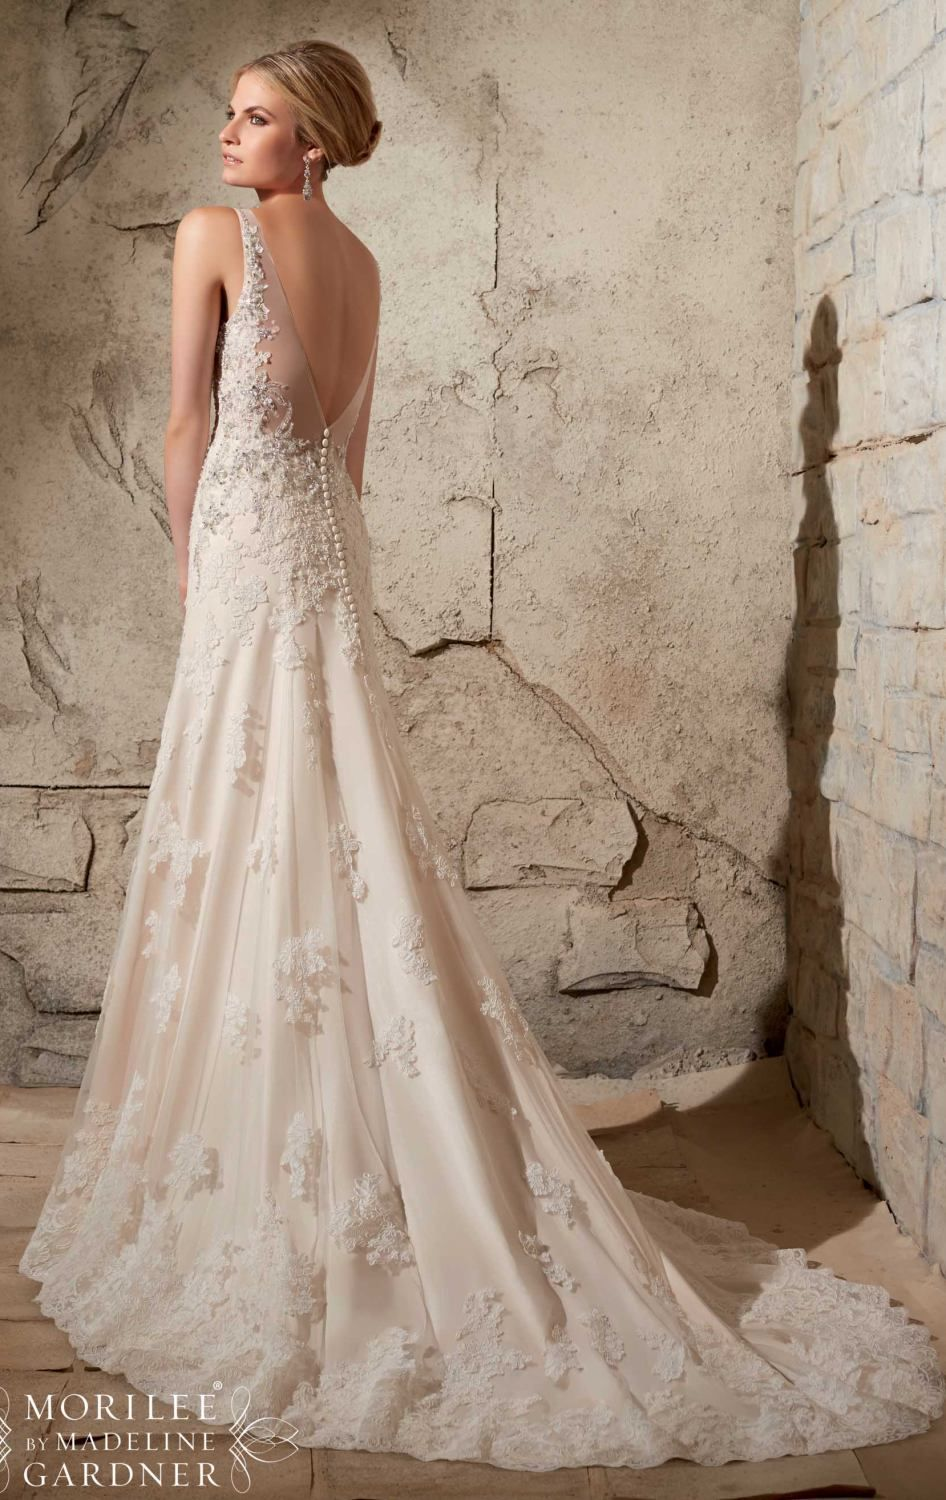 Mori Lee 2709 - Thumbnail 2 | Winter wedding dresses | Pinterest